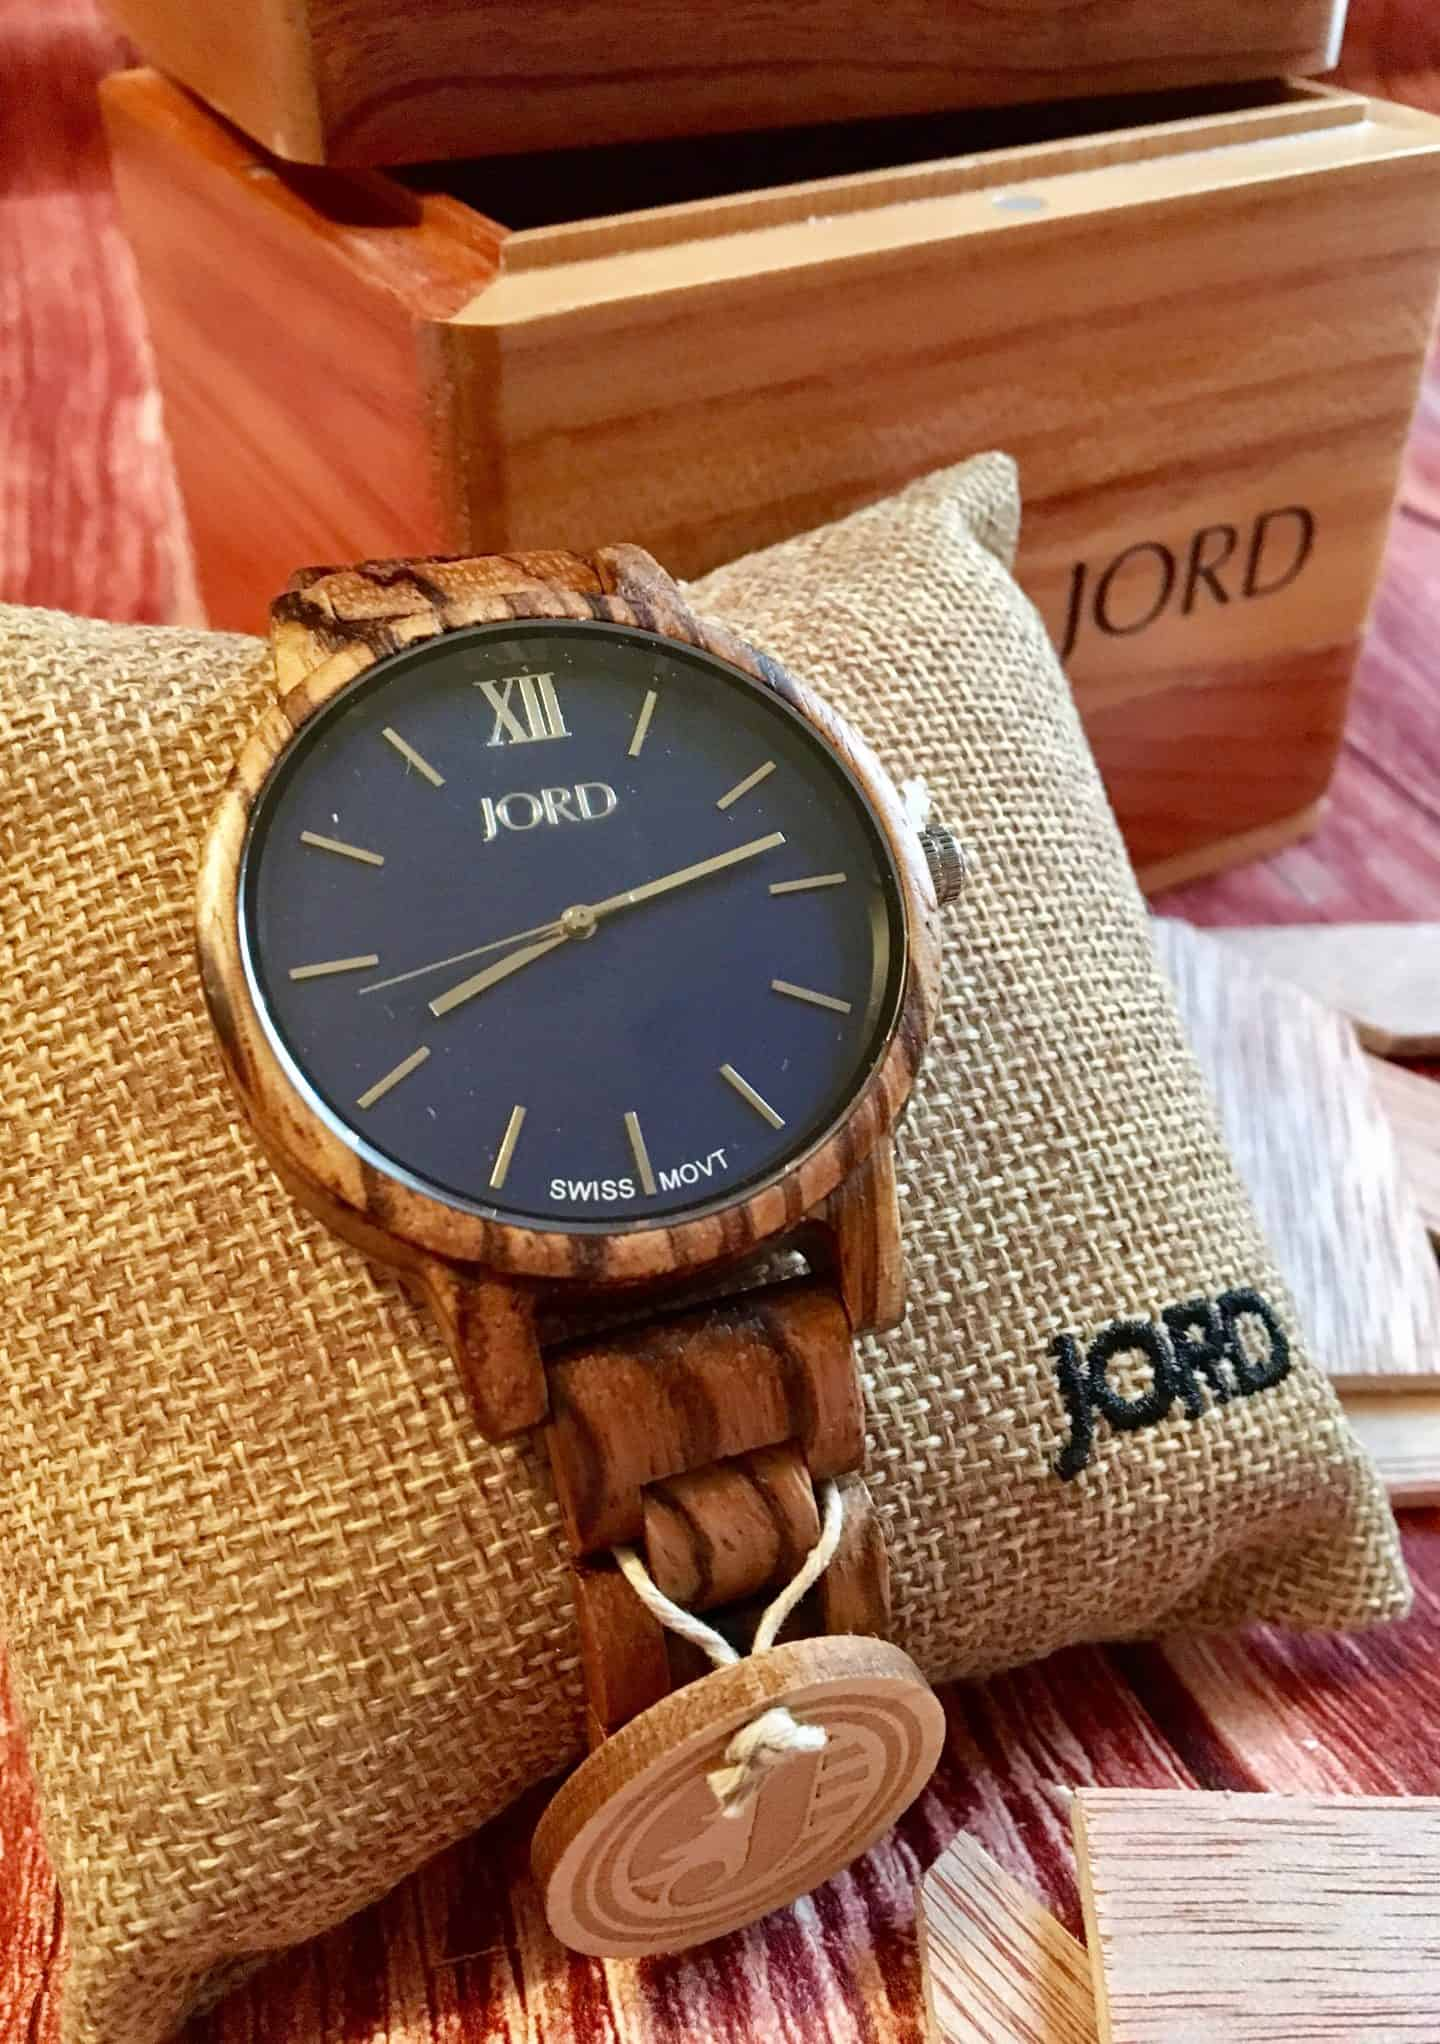 JORD Wood Watch Review & Giveaway